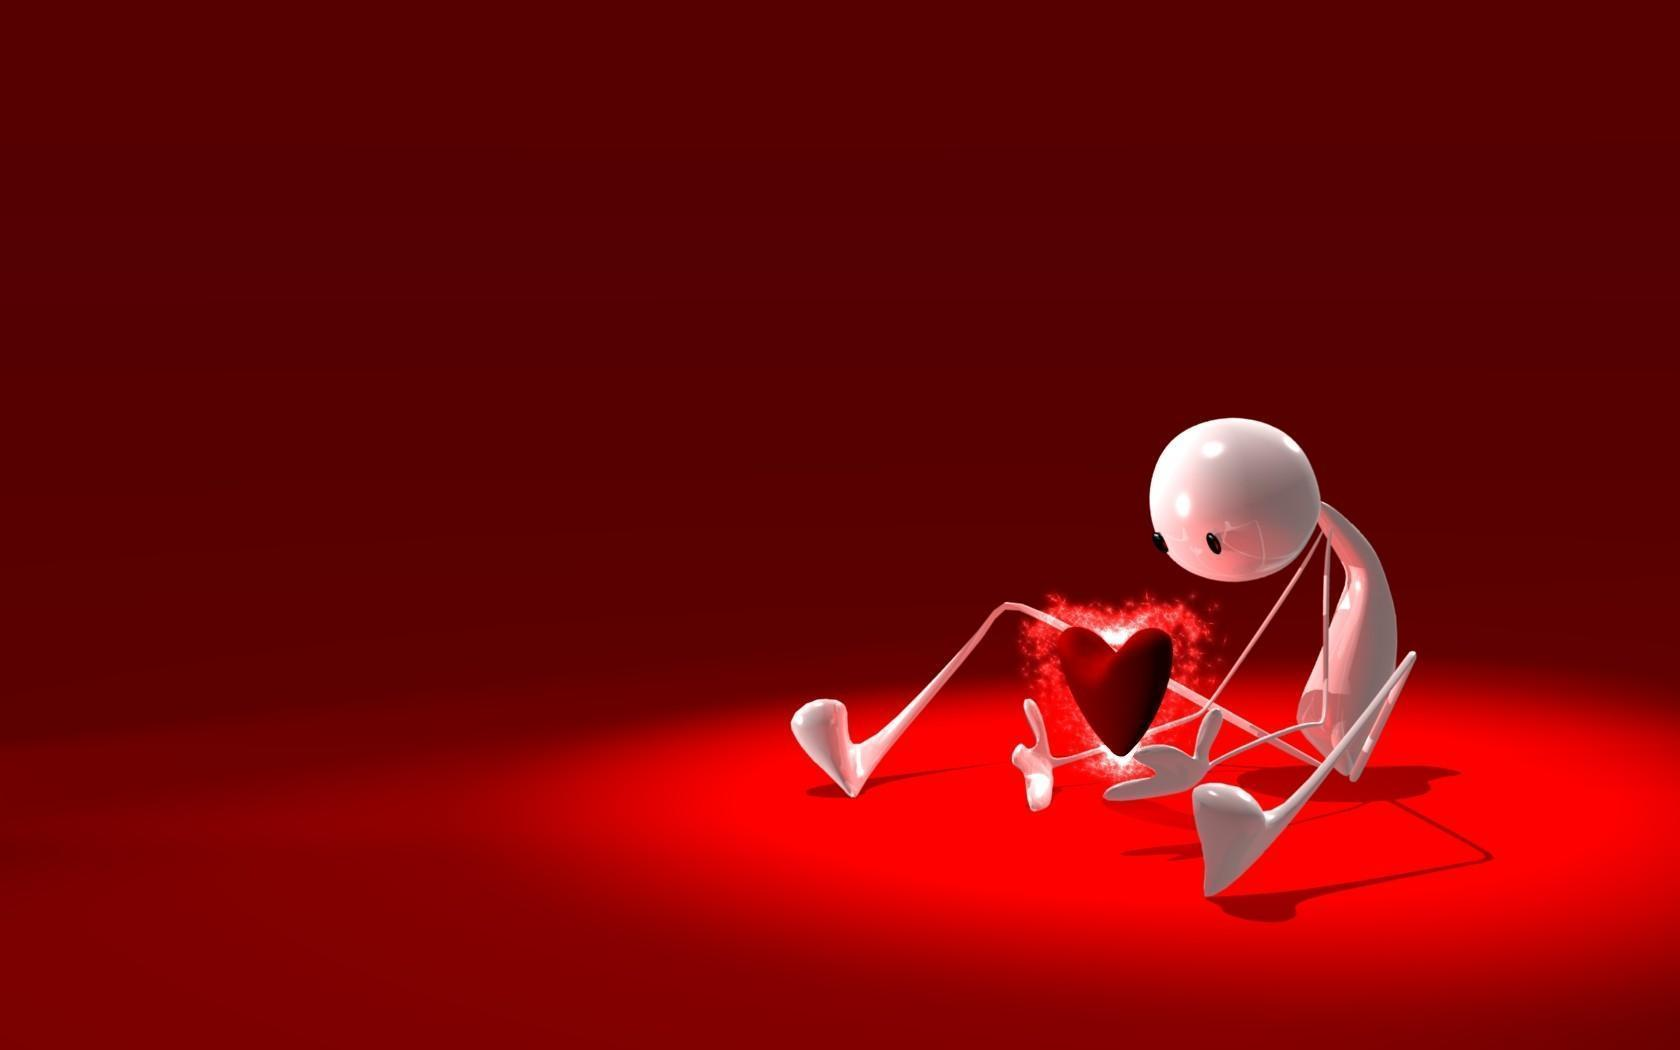 Broken Heart Wallpapers 1680x1050